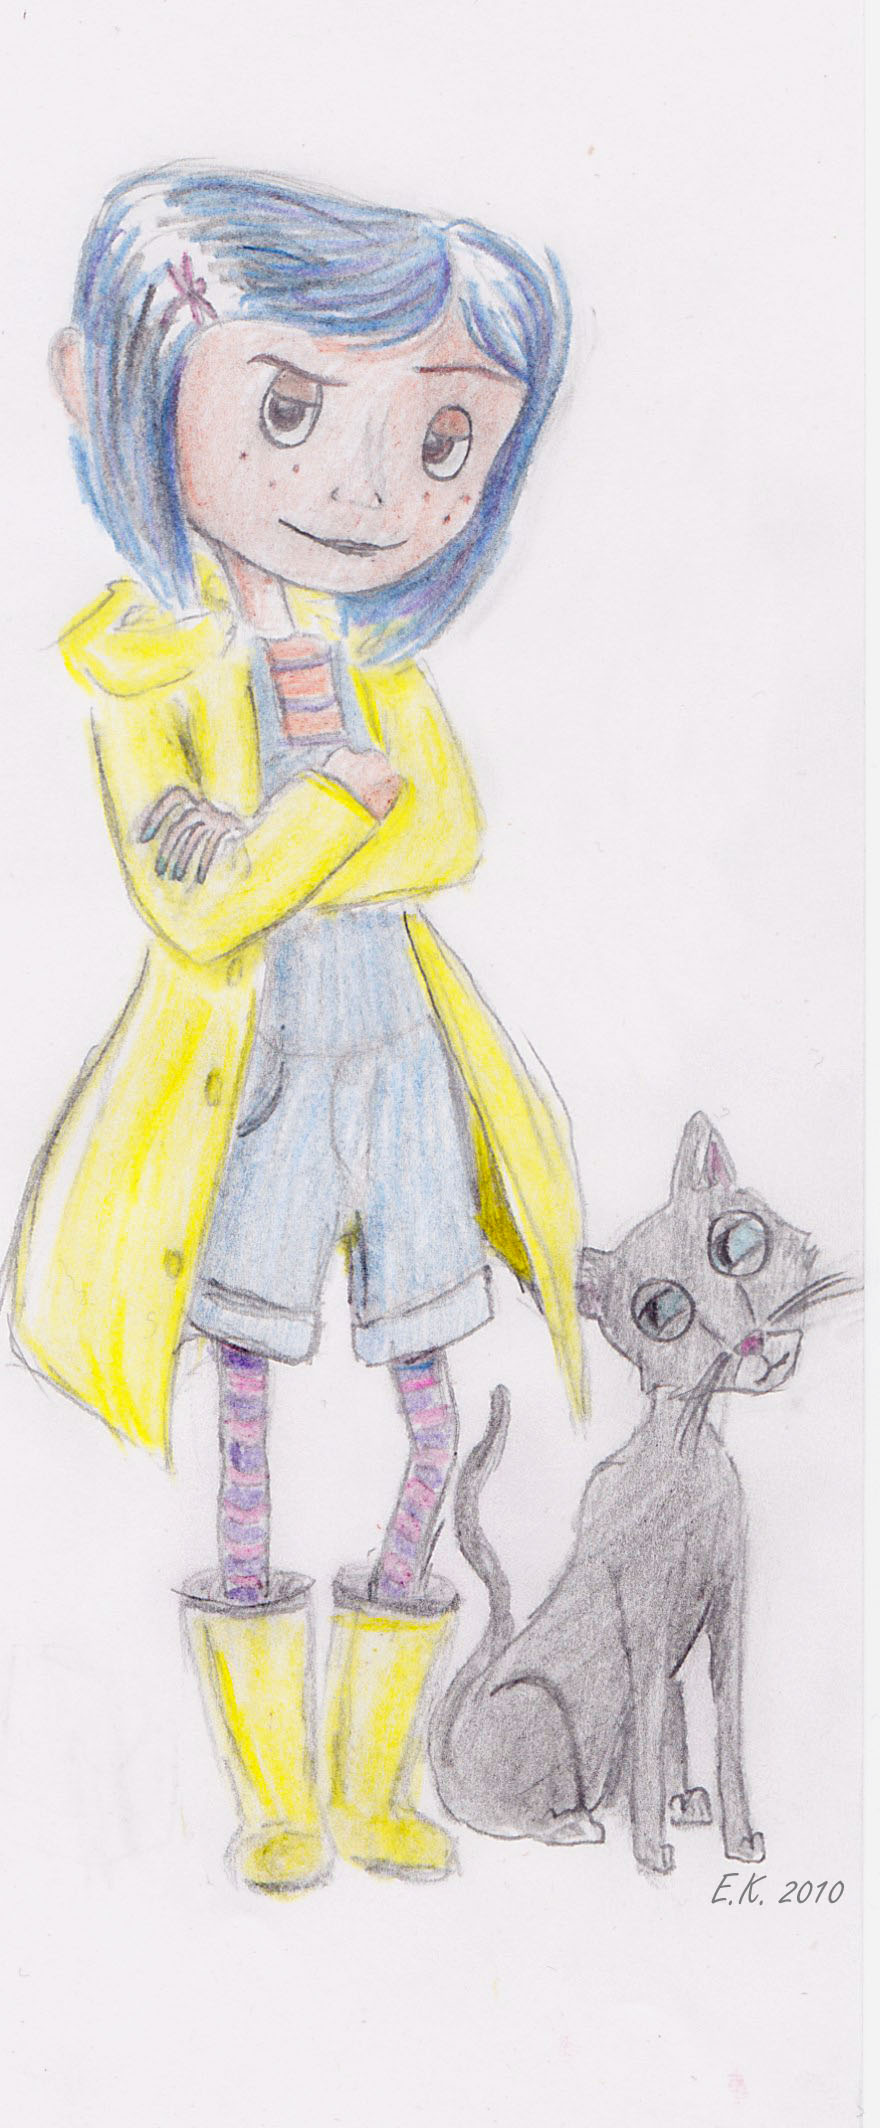 Coraline and the cat by ElisabethThe3rd on DeviantArt